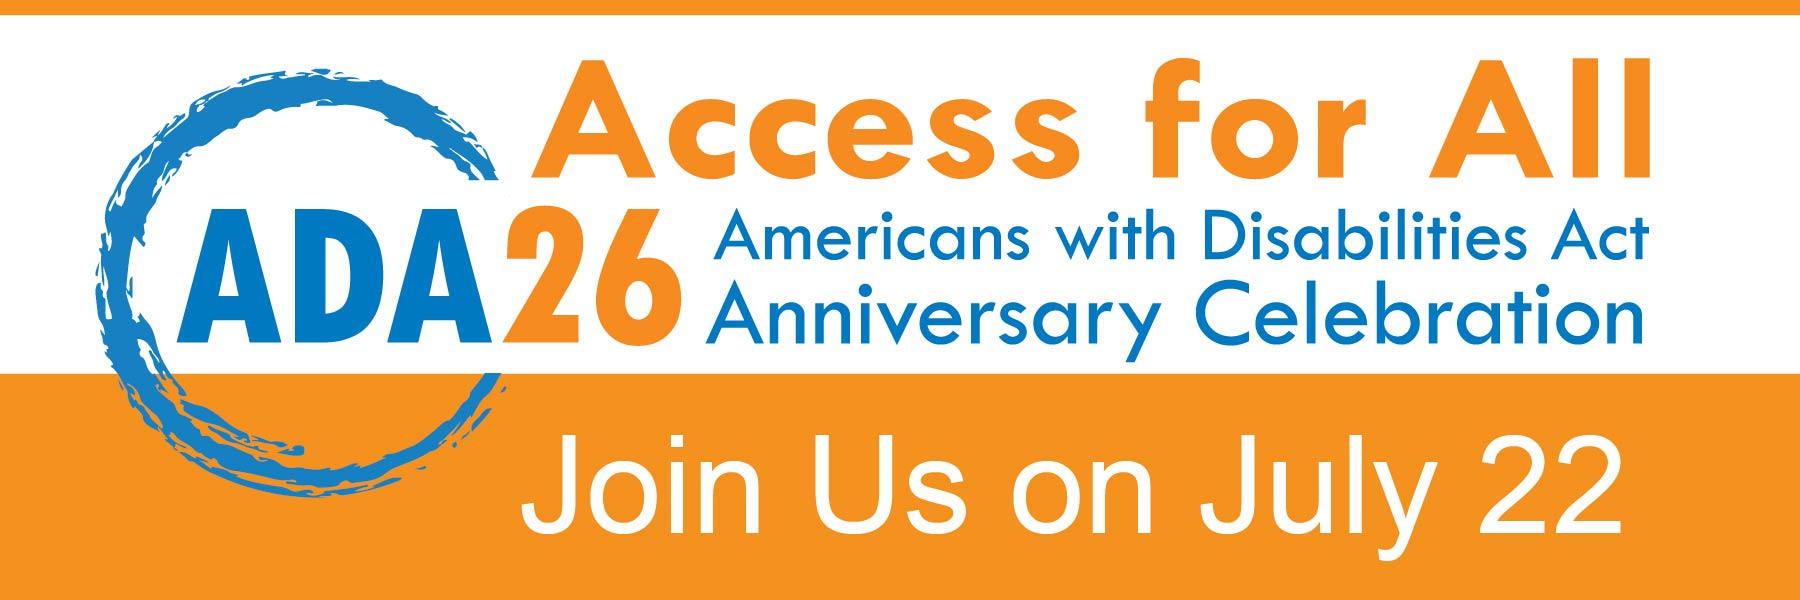 ADA26 Access for all, join us on July 22